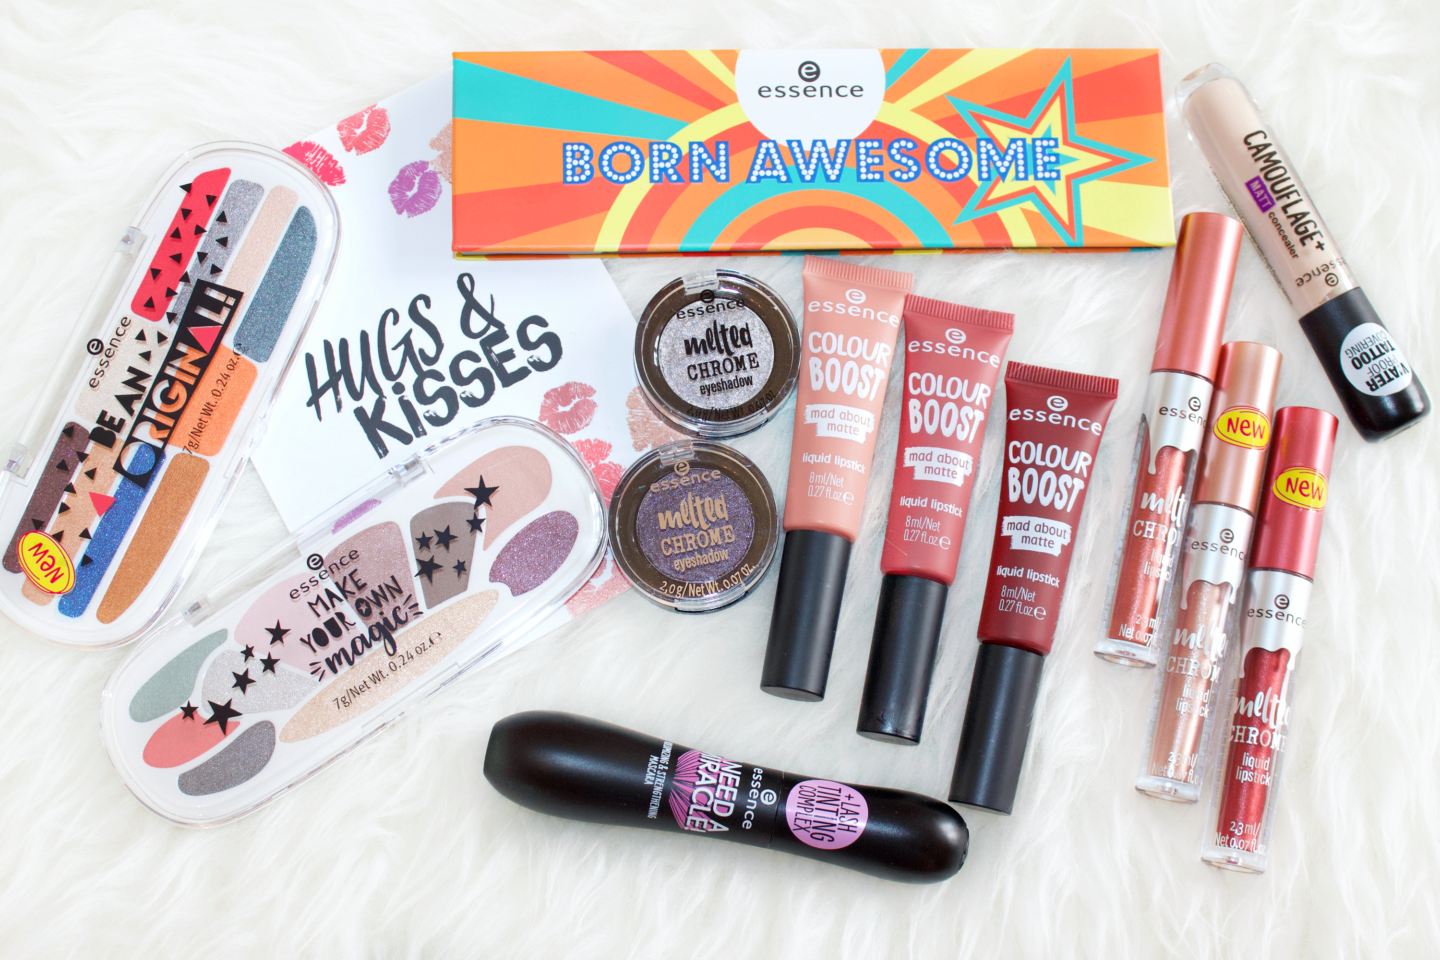 My First Essence PR Package